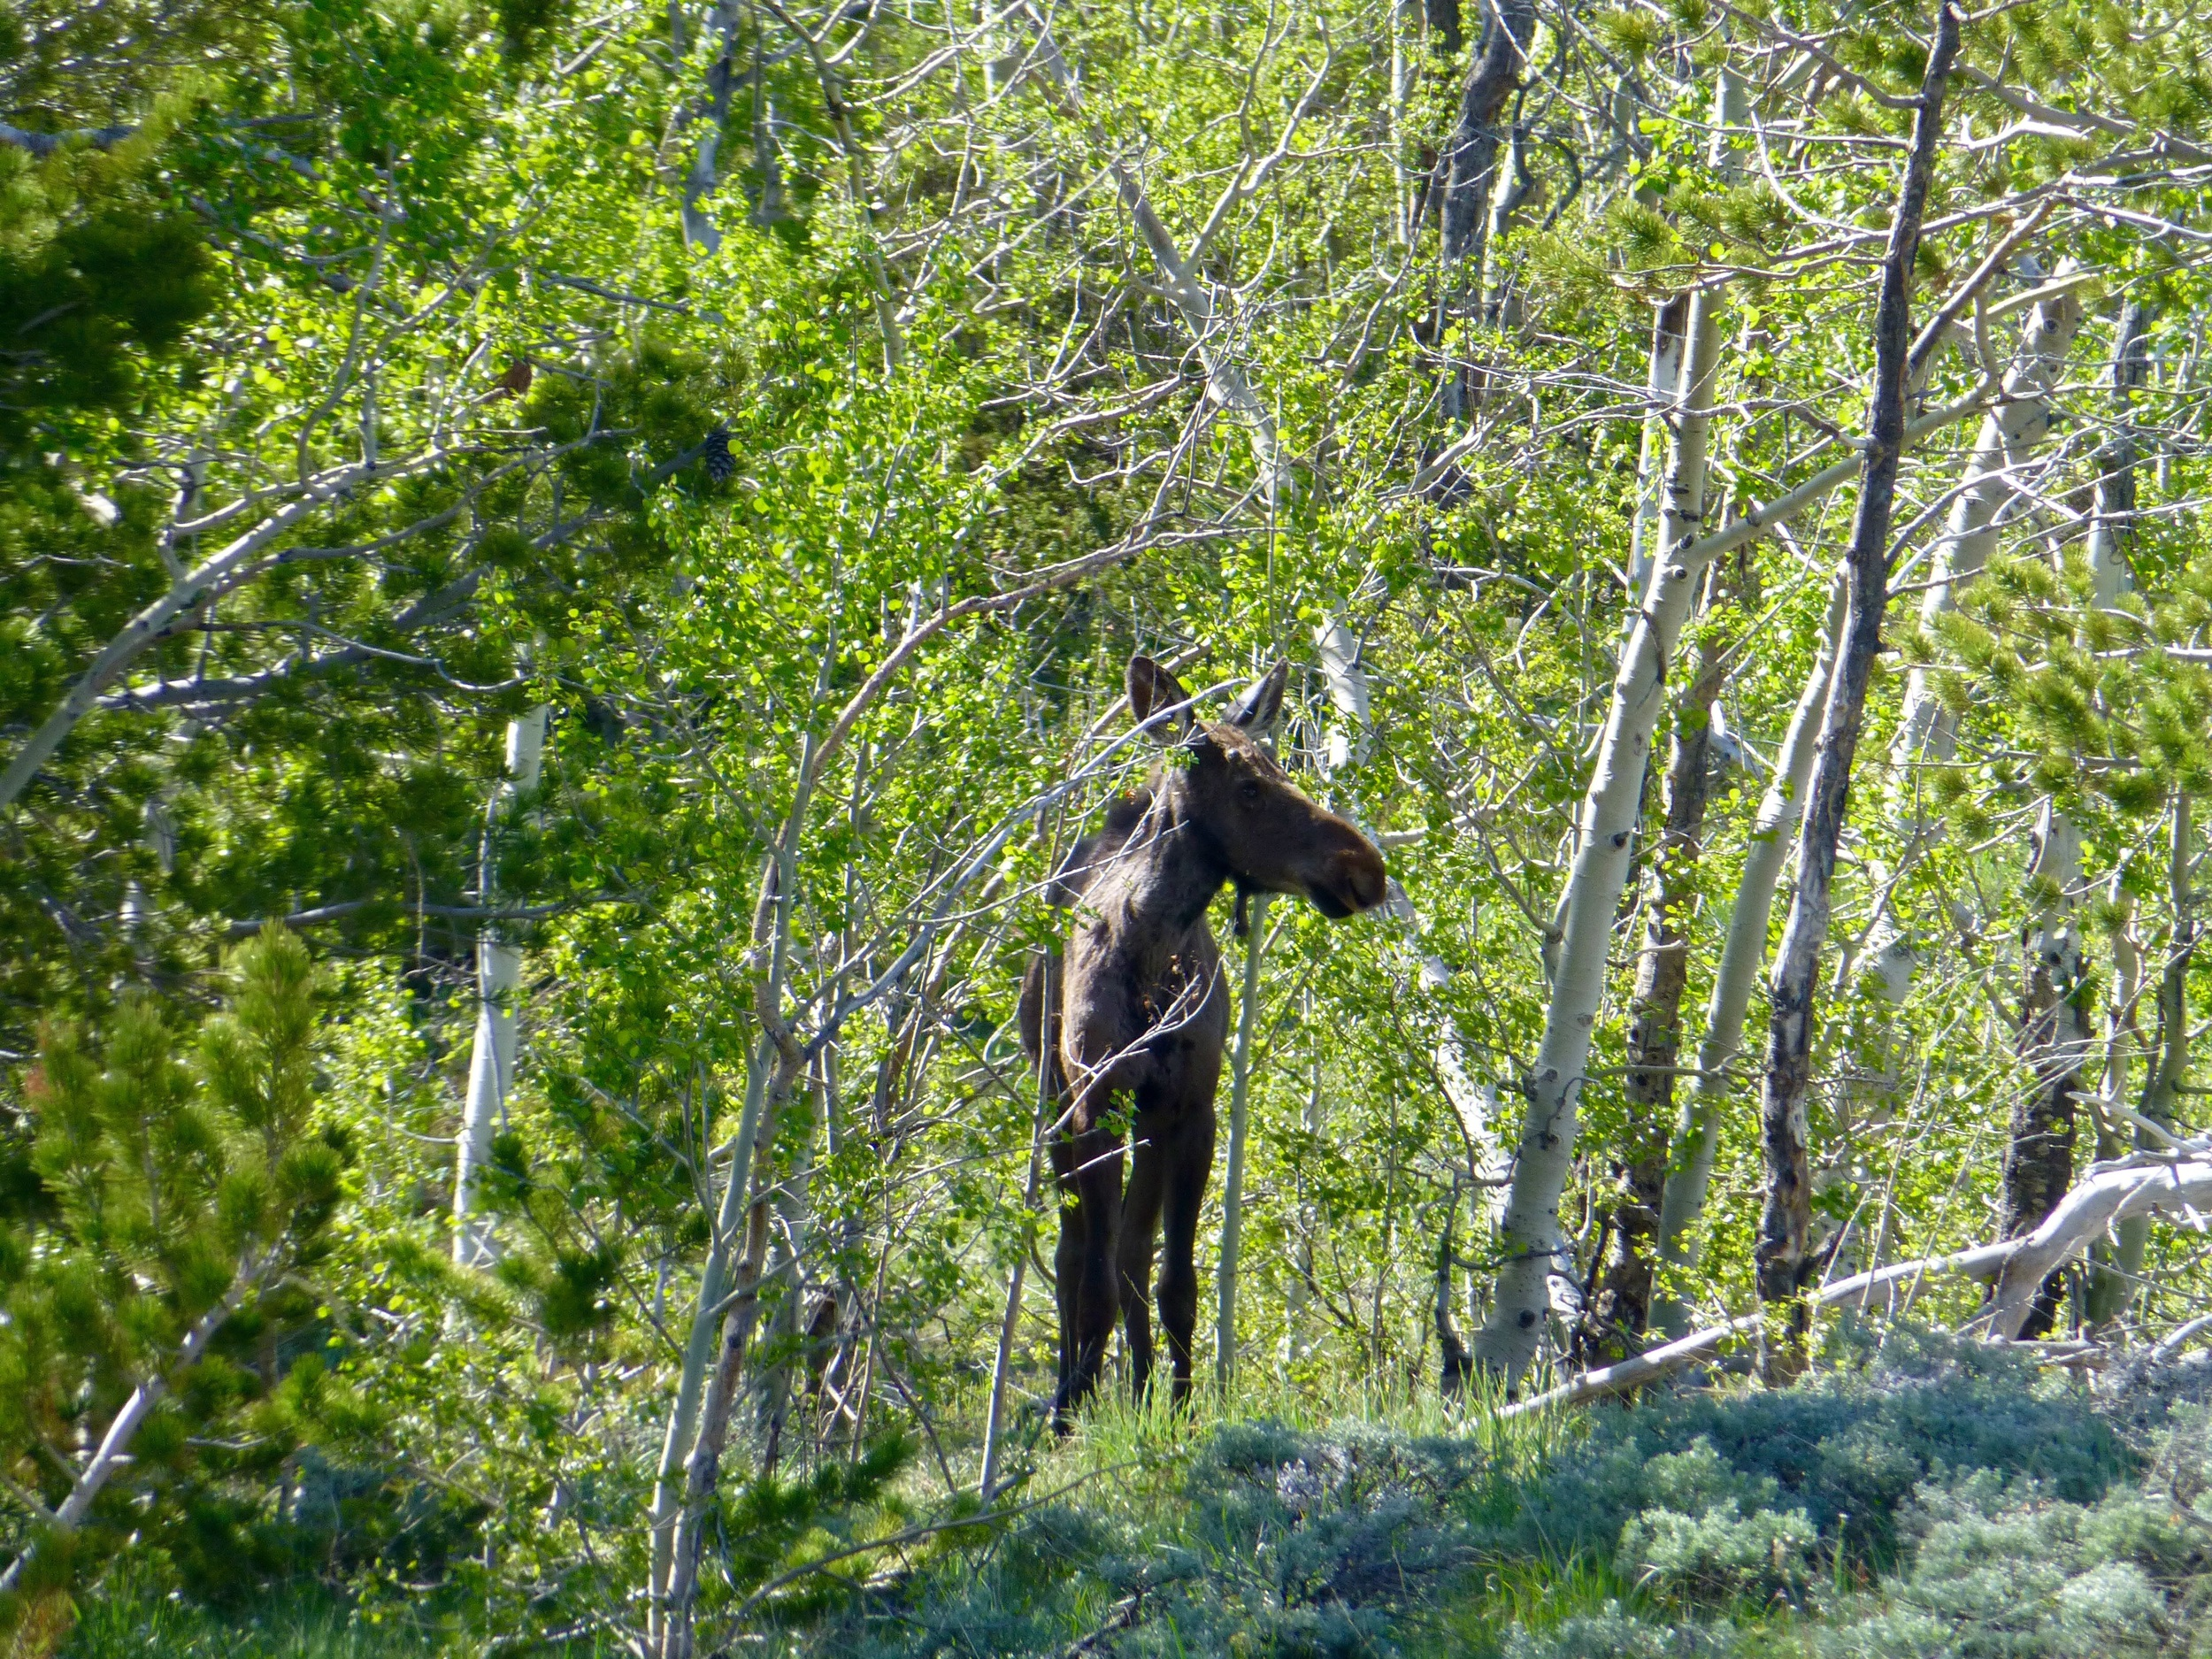 Cow Moose coming to visit